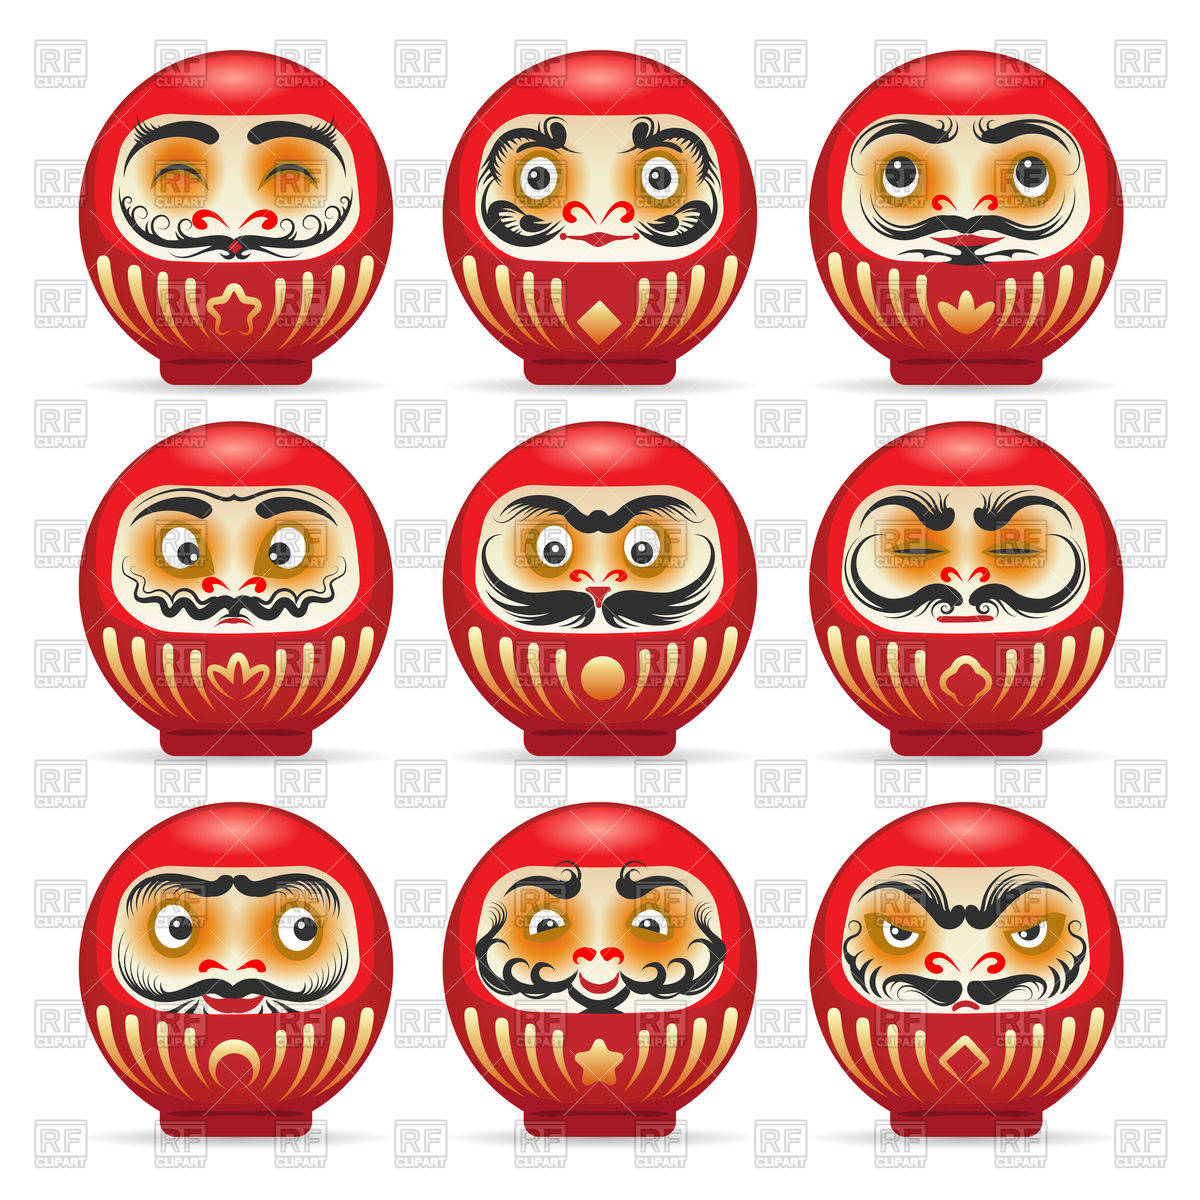 Red daruma dolls from japan isolated on white Stock Vector Image.